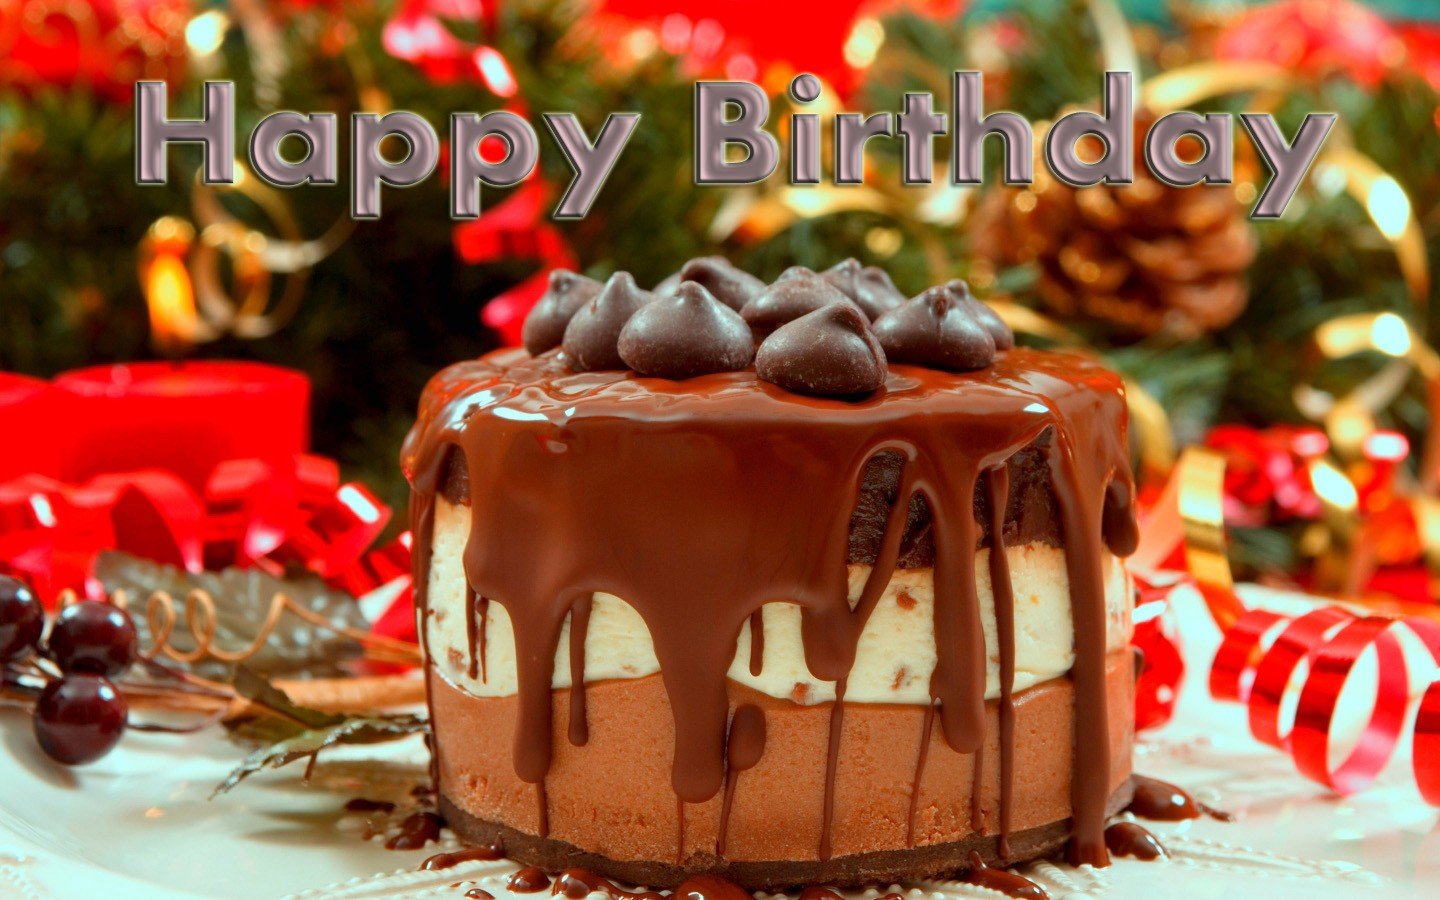 Happy Birthday Hd Wallpaper Latestwallpaper99